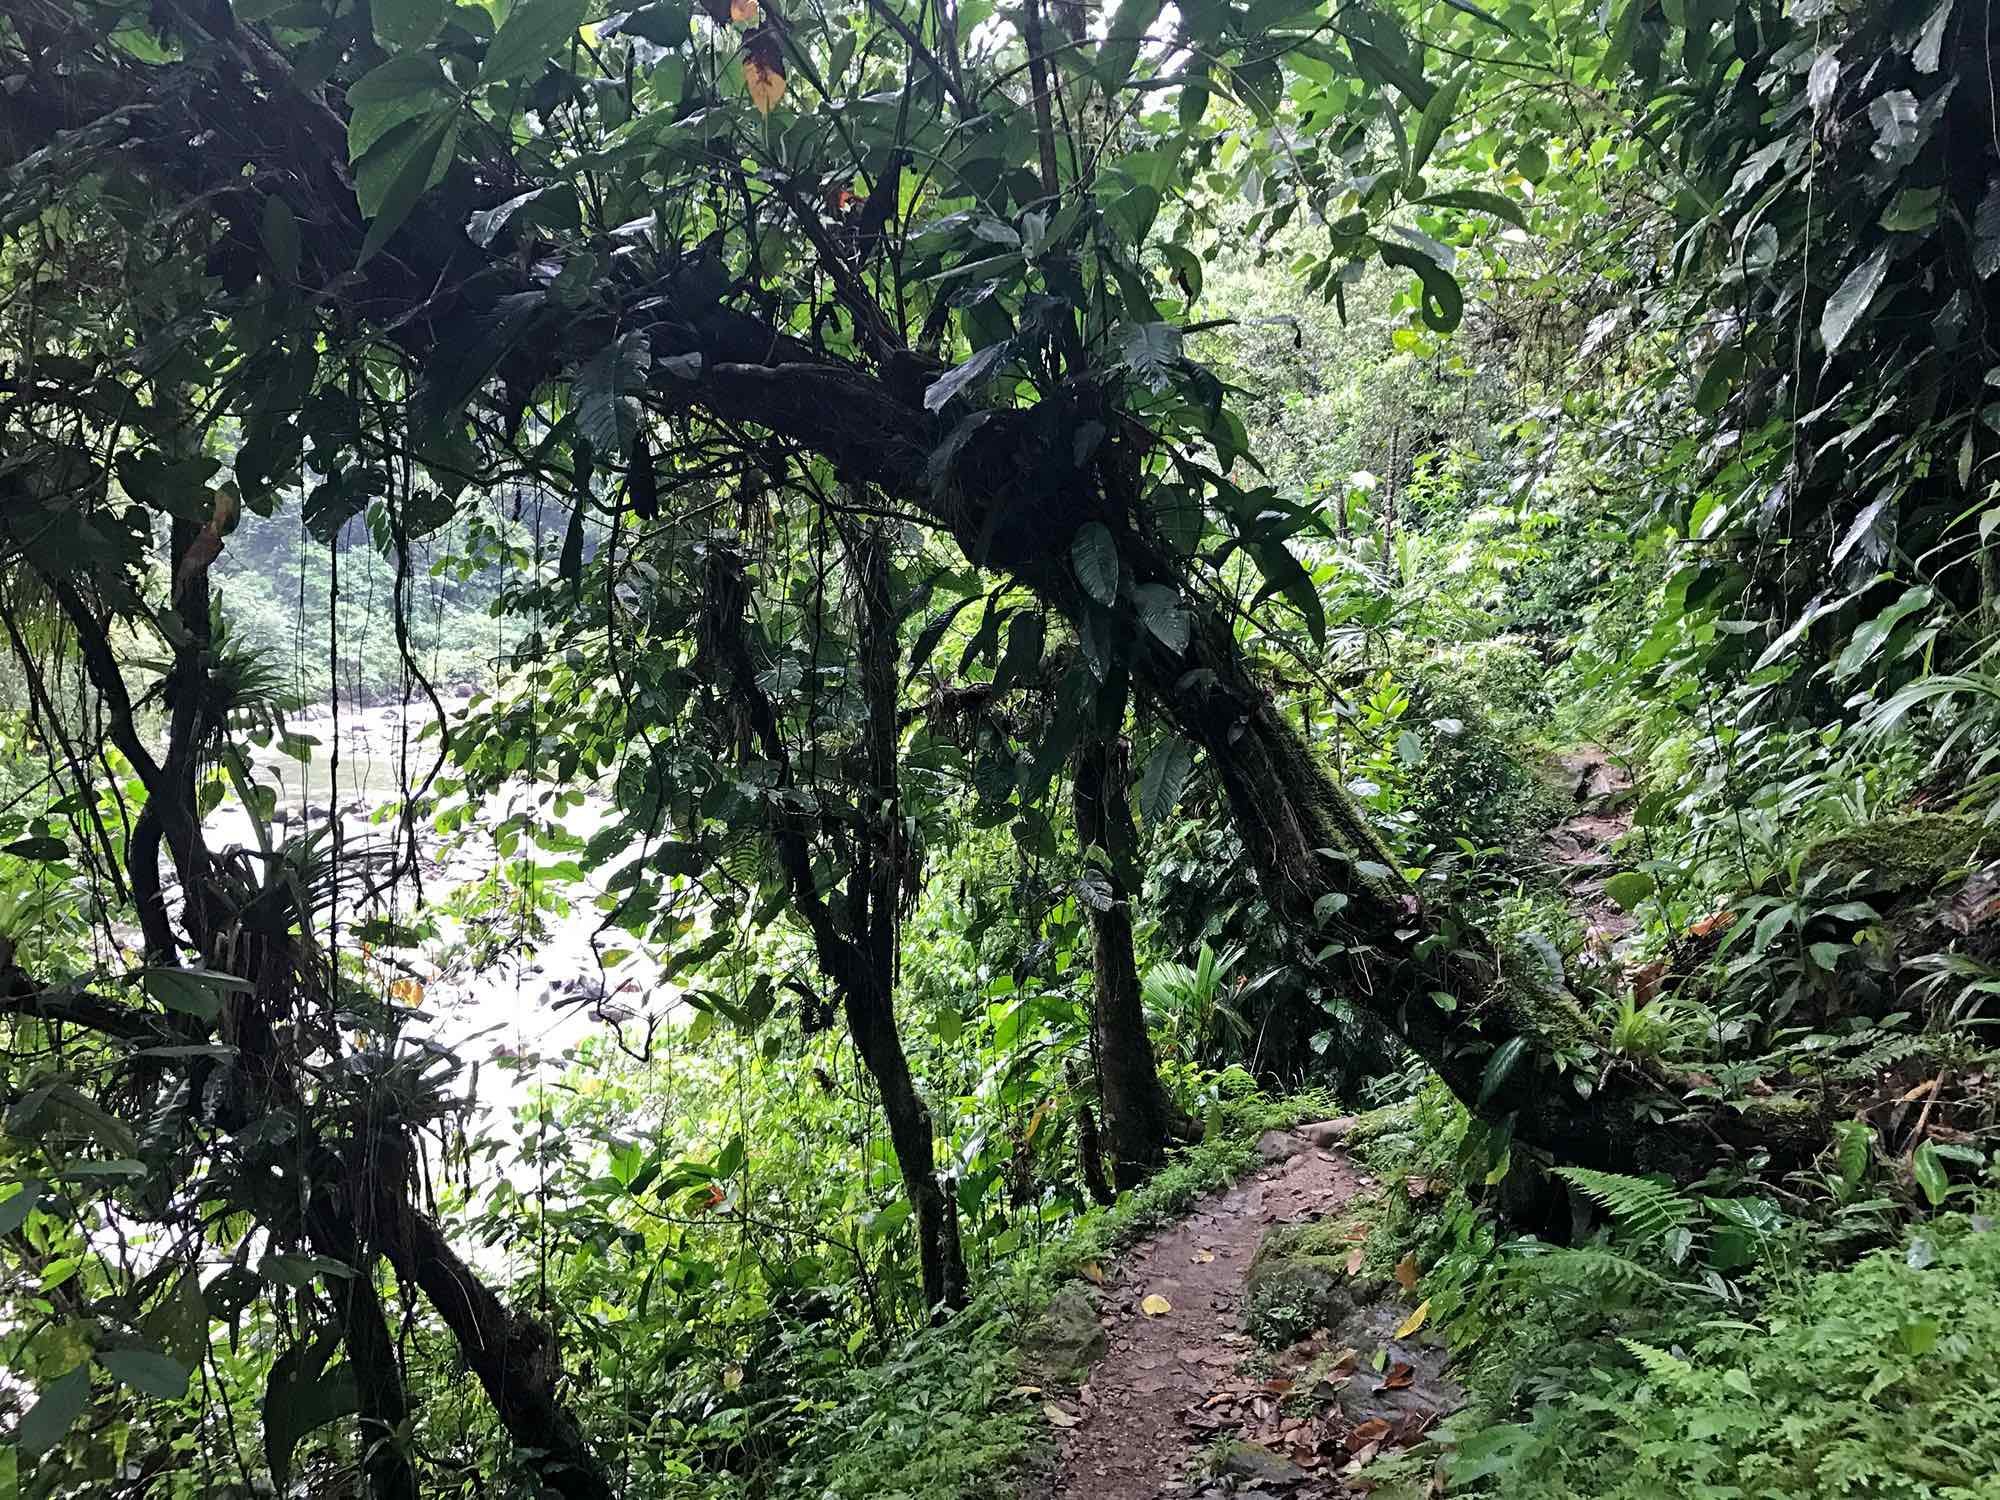 Lost-City-Colombia-hiking-jungle-views4.jpg